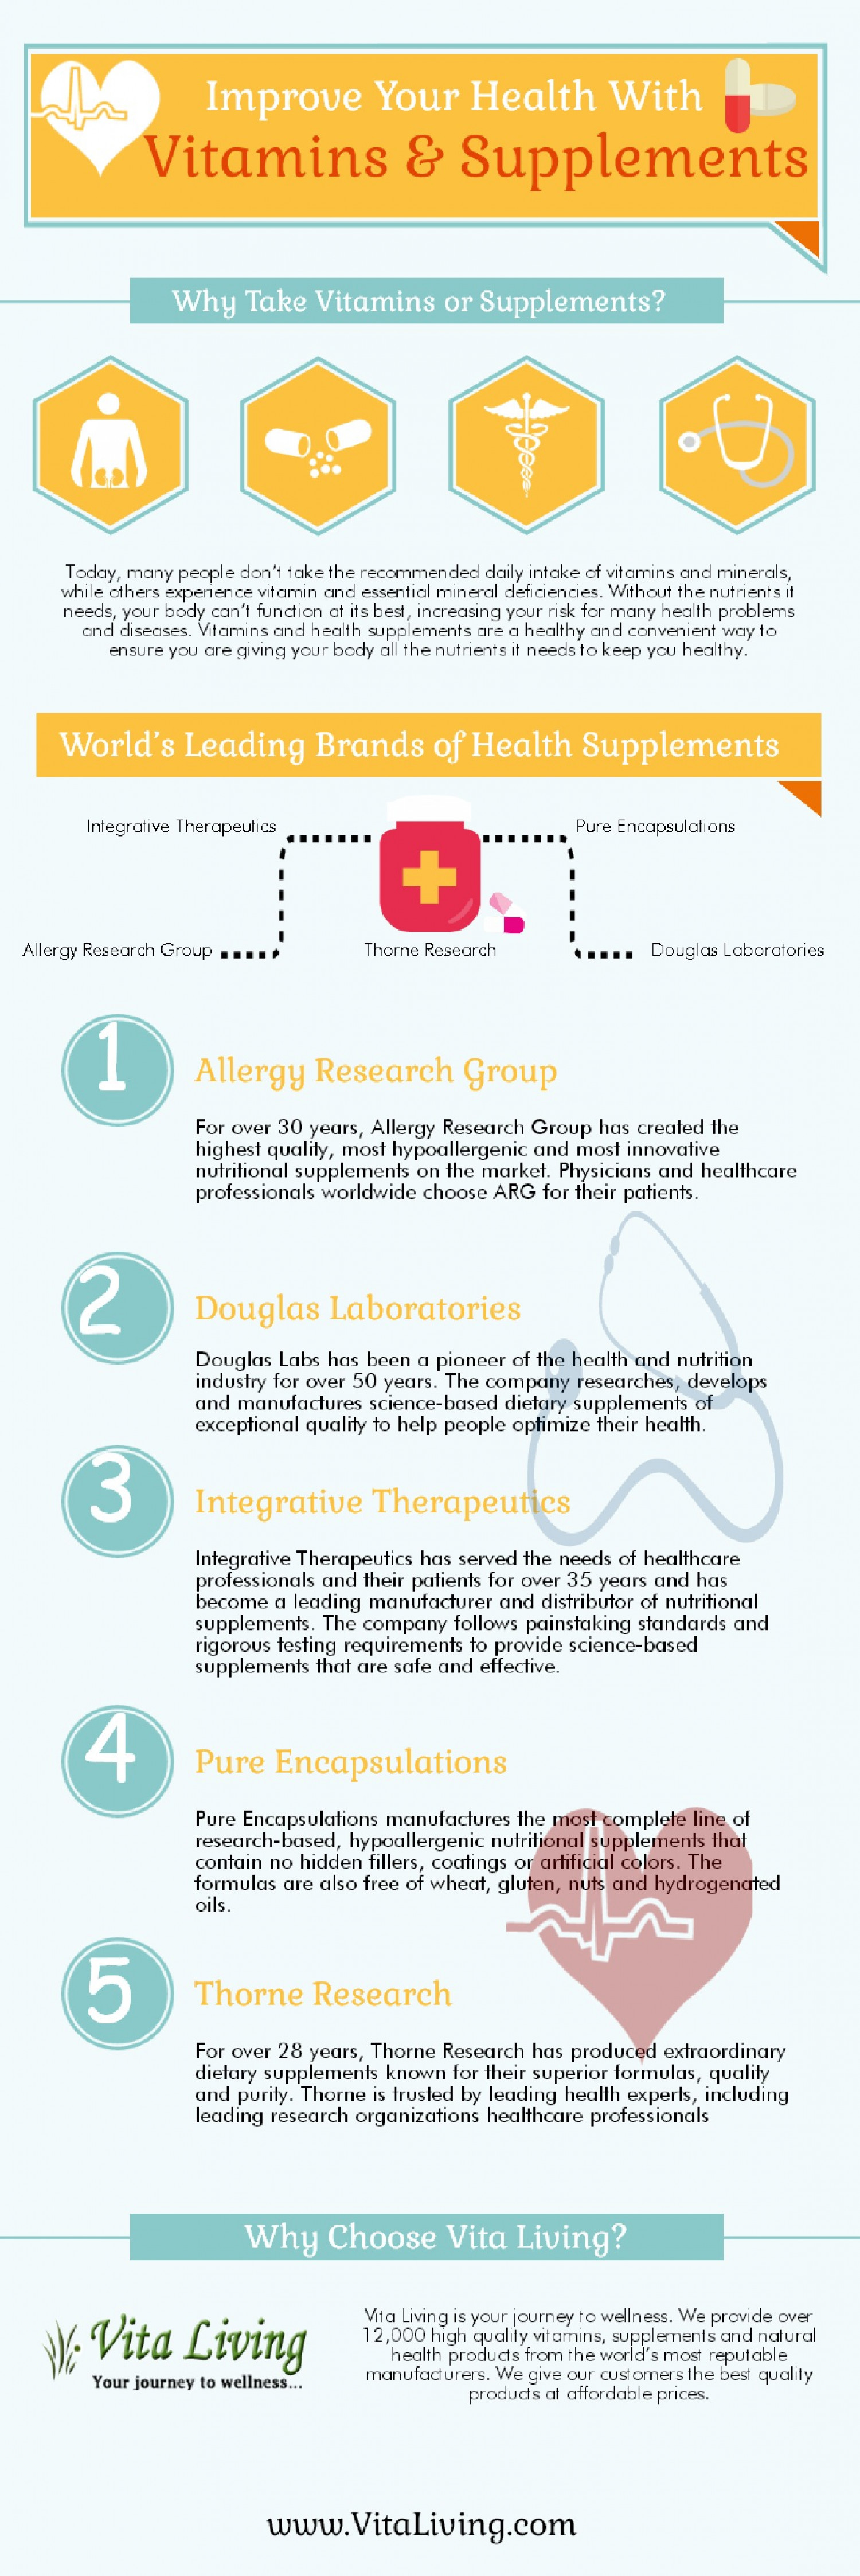 Improve Your Health with Vitamins & Supplements Infographic